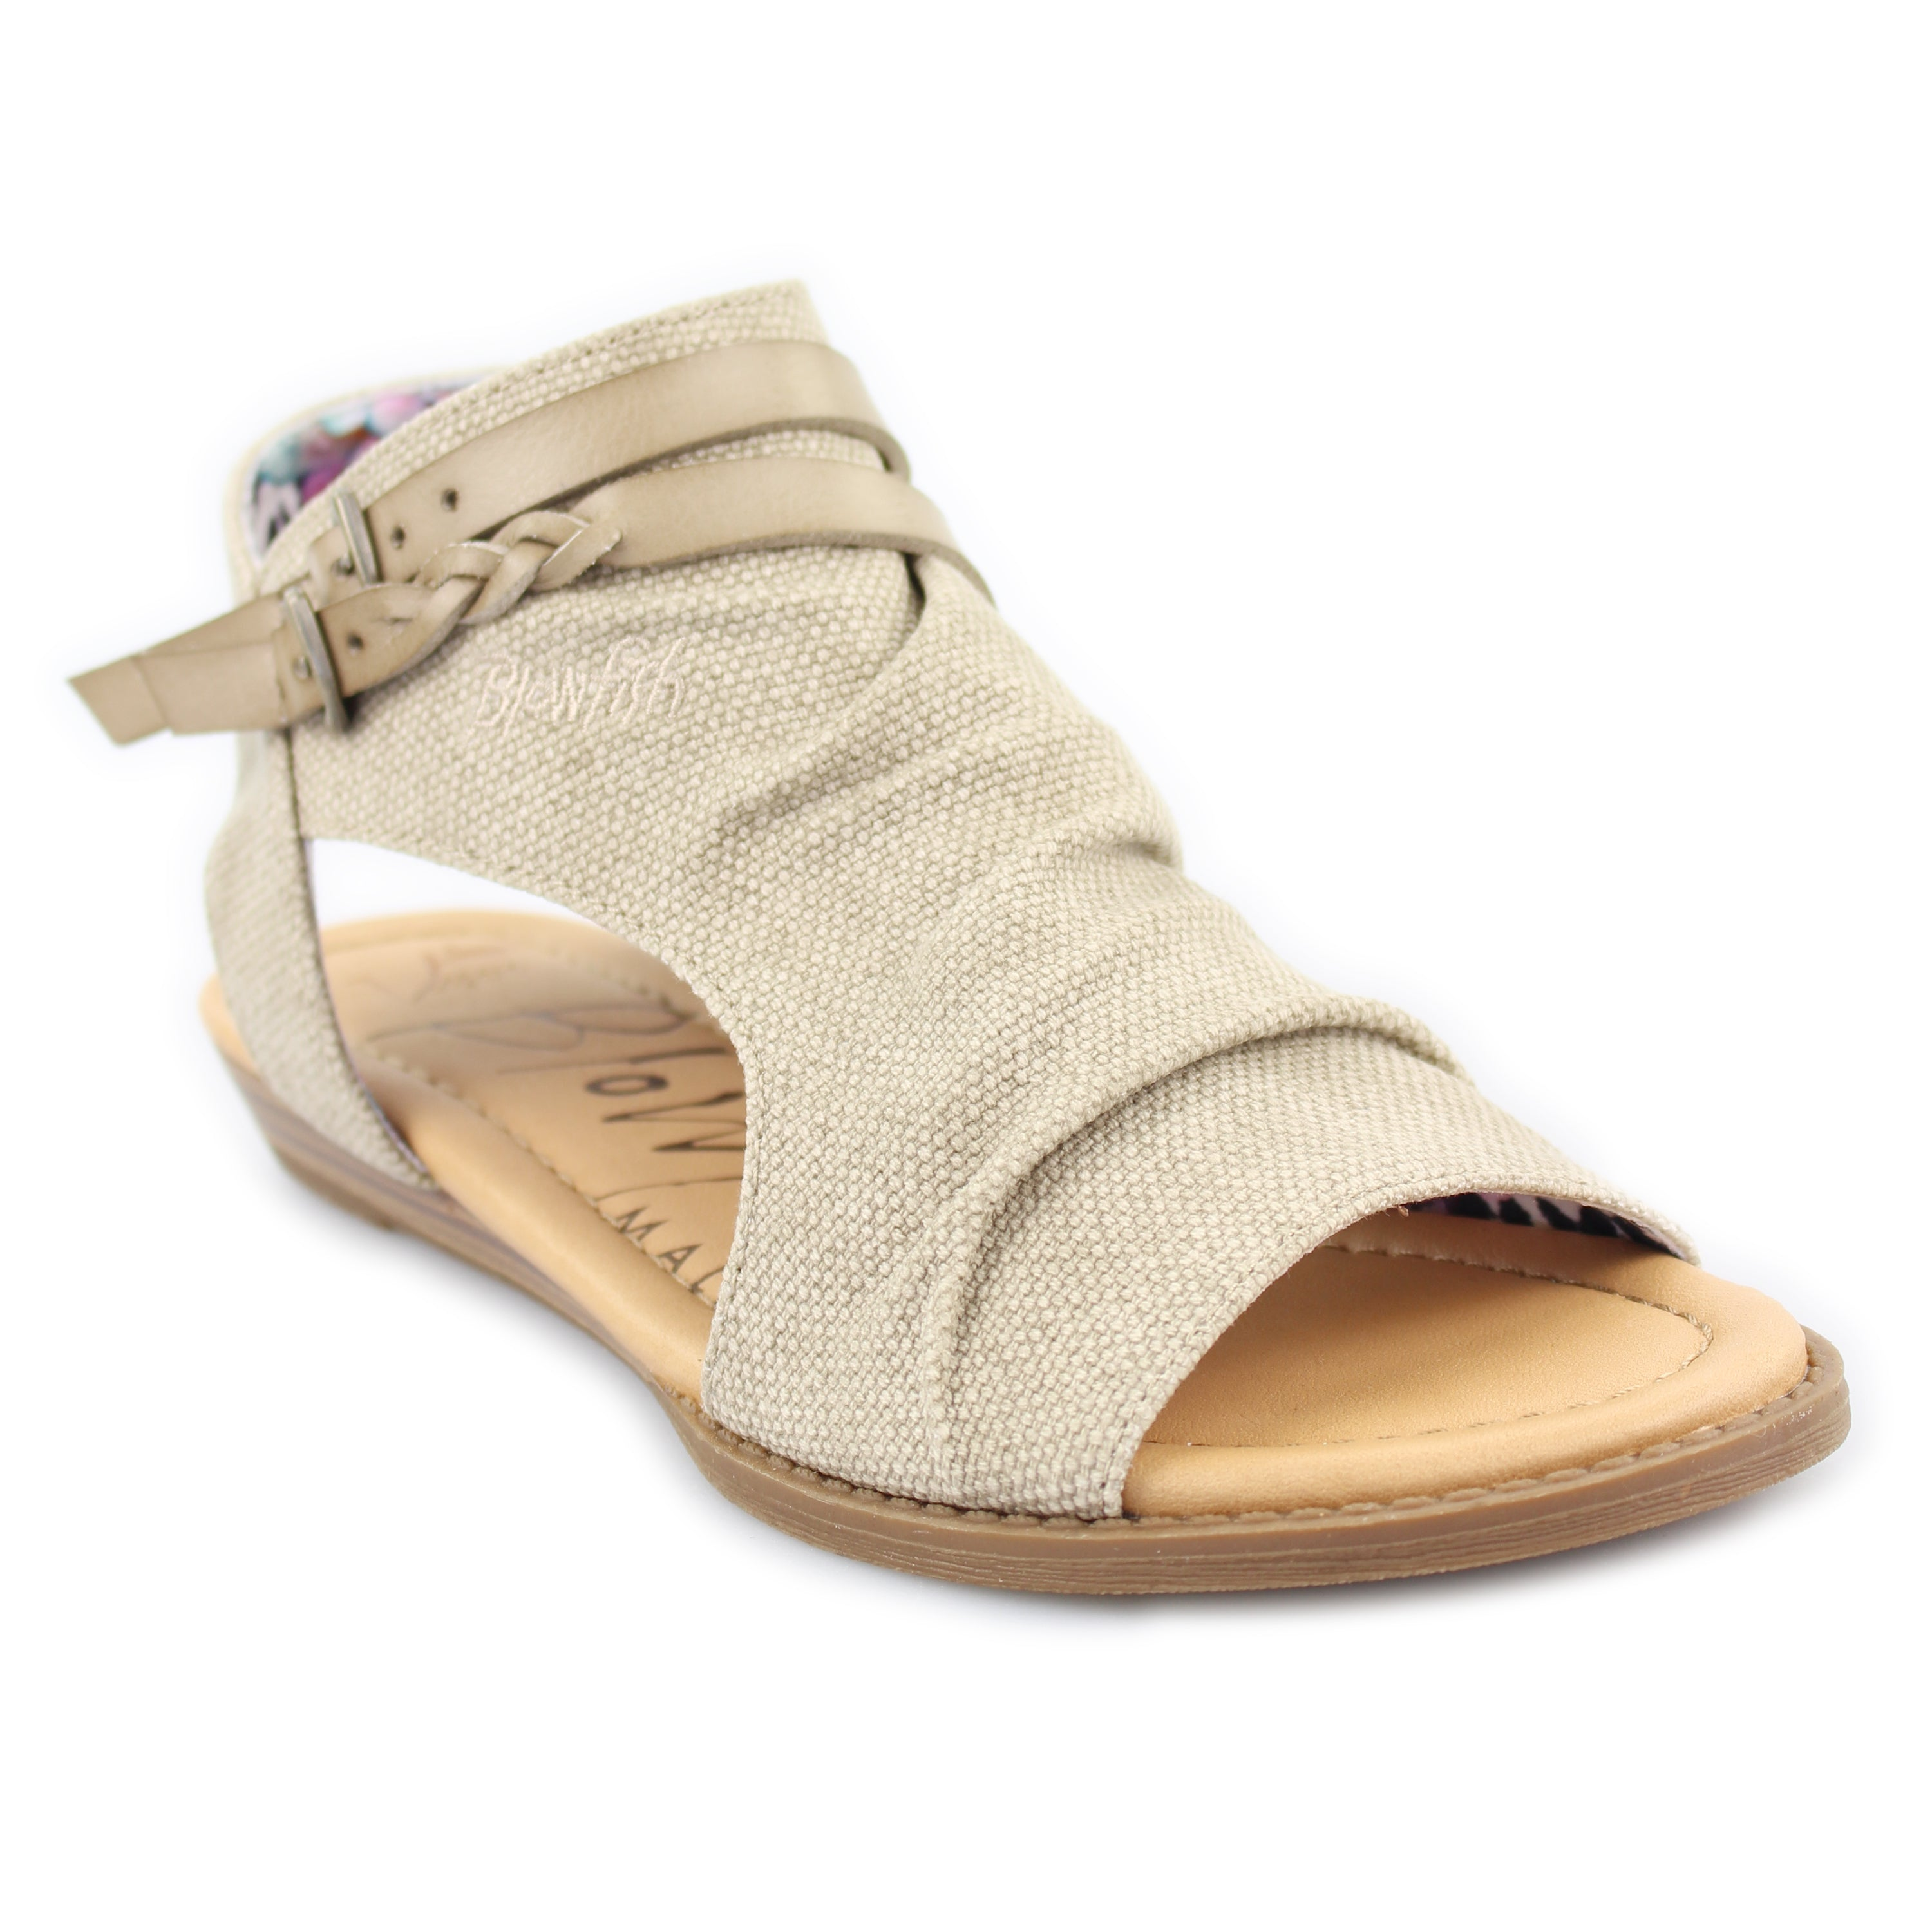 'Blowfish' Malibu Blumoon BF-7295 264 - Sandals - Lt. Taupe Rancher